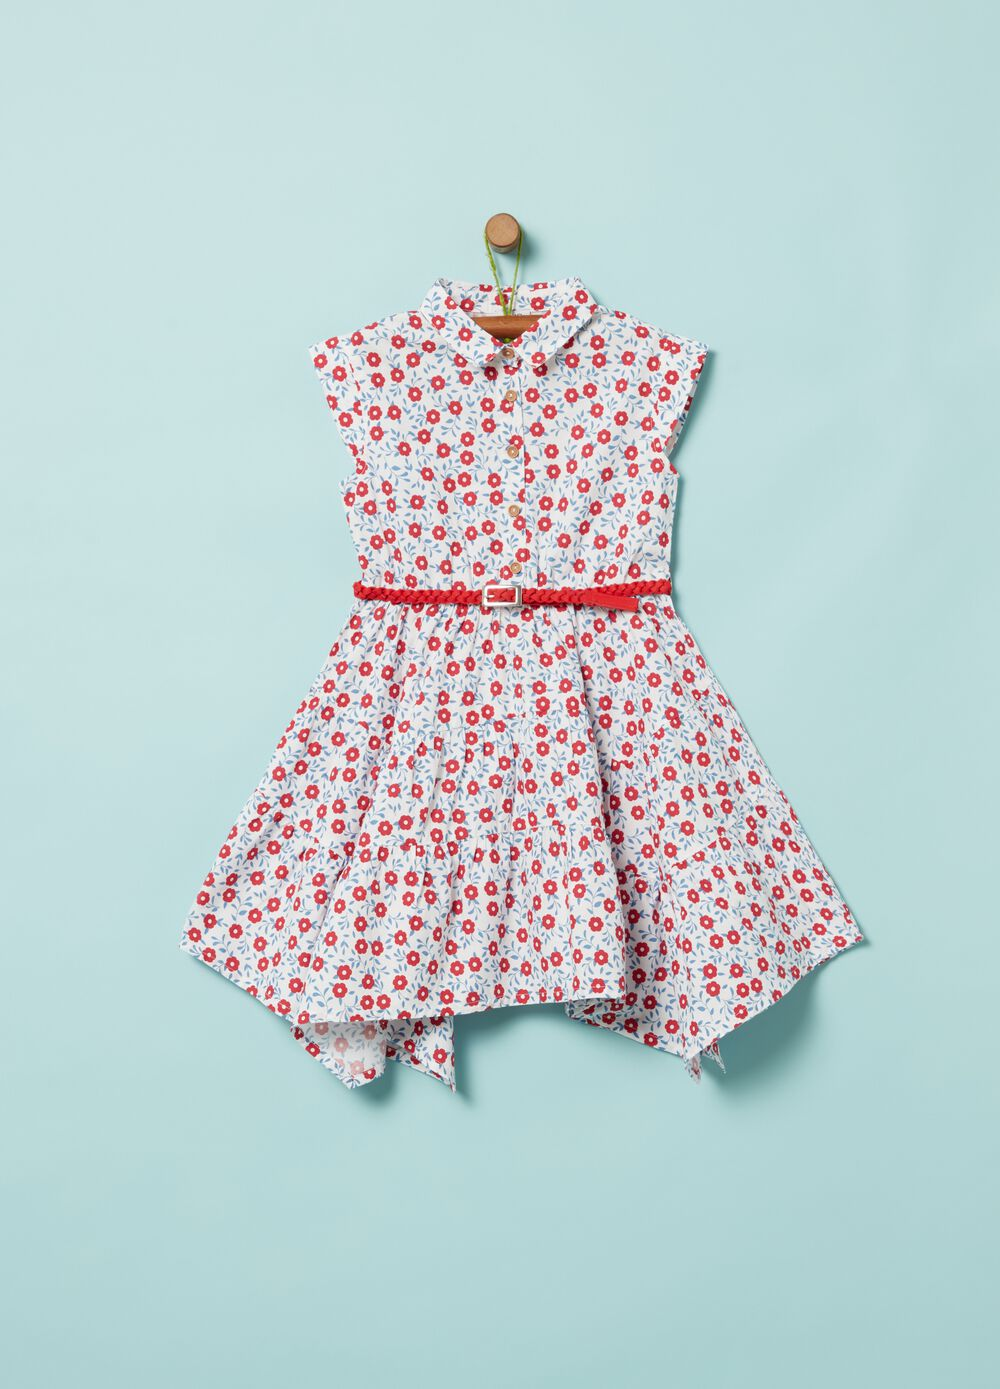 Dress with all-over print and collar